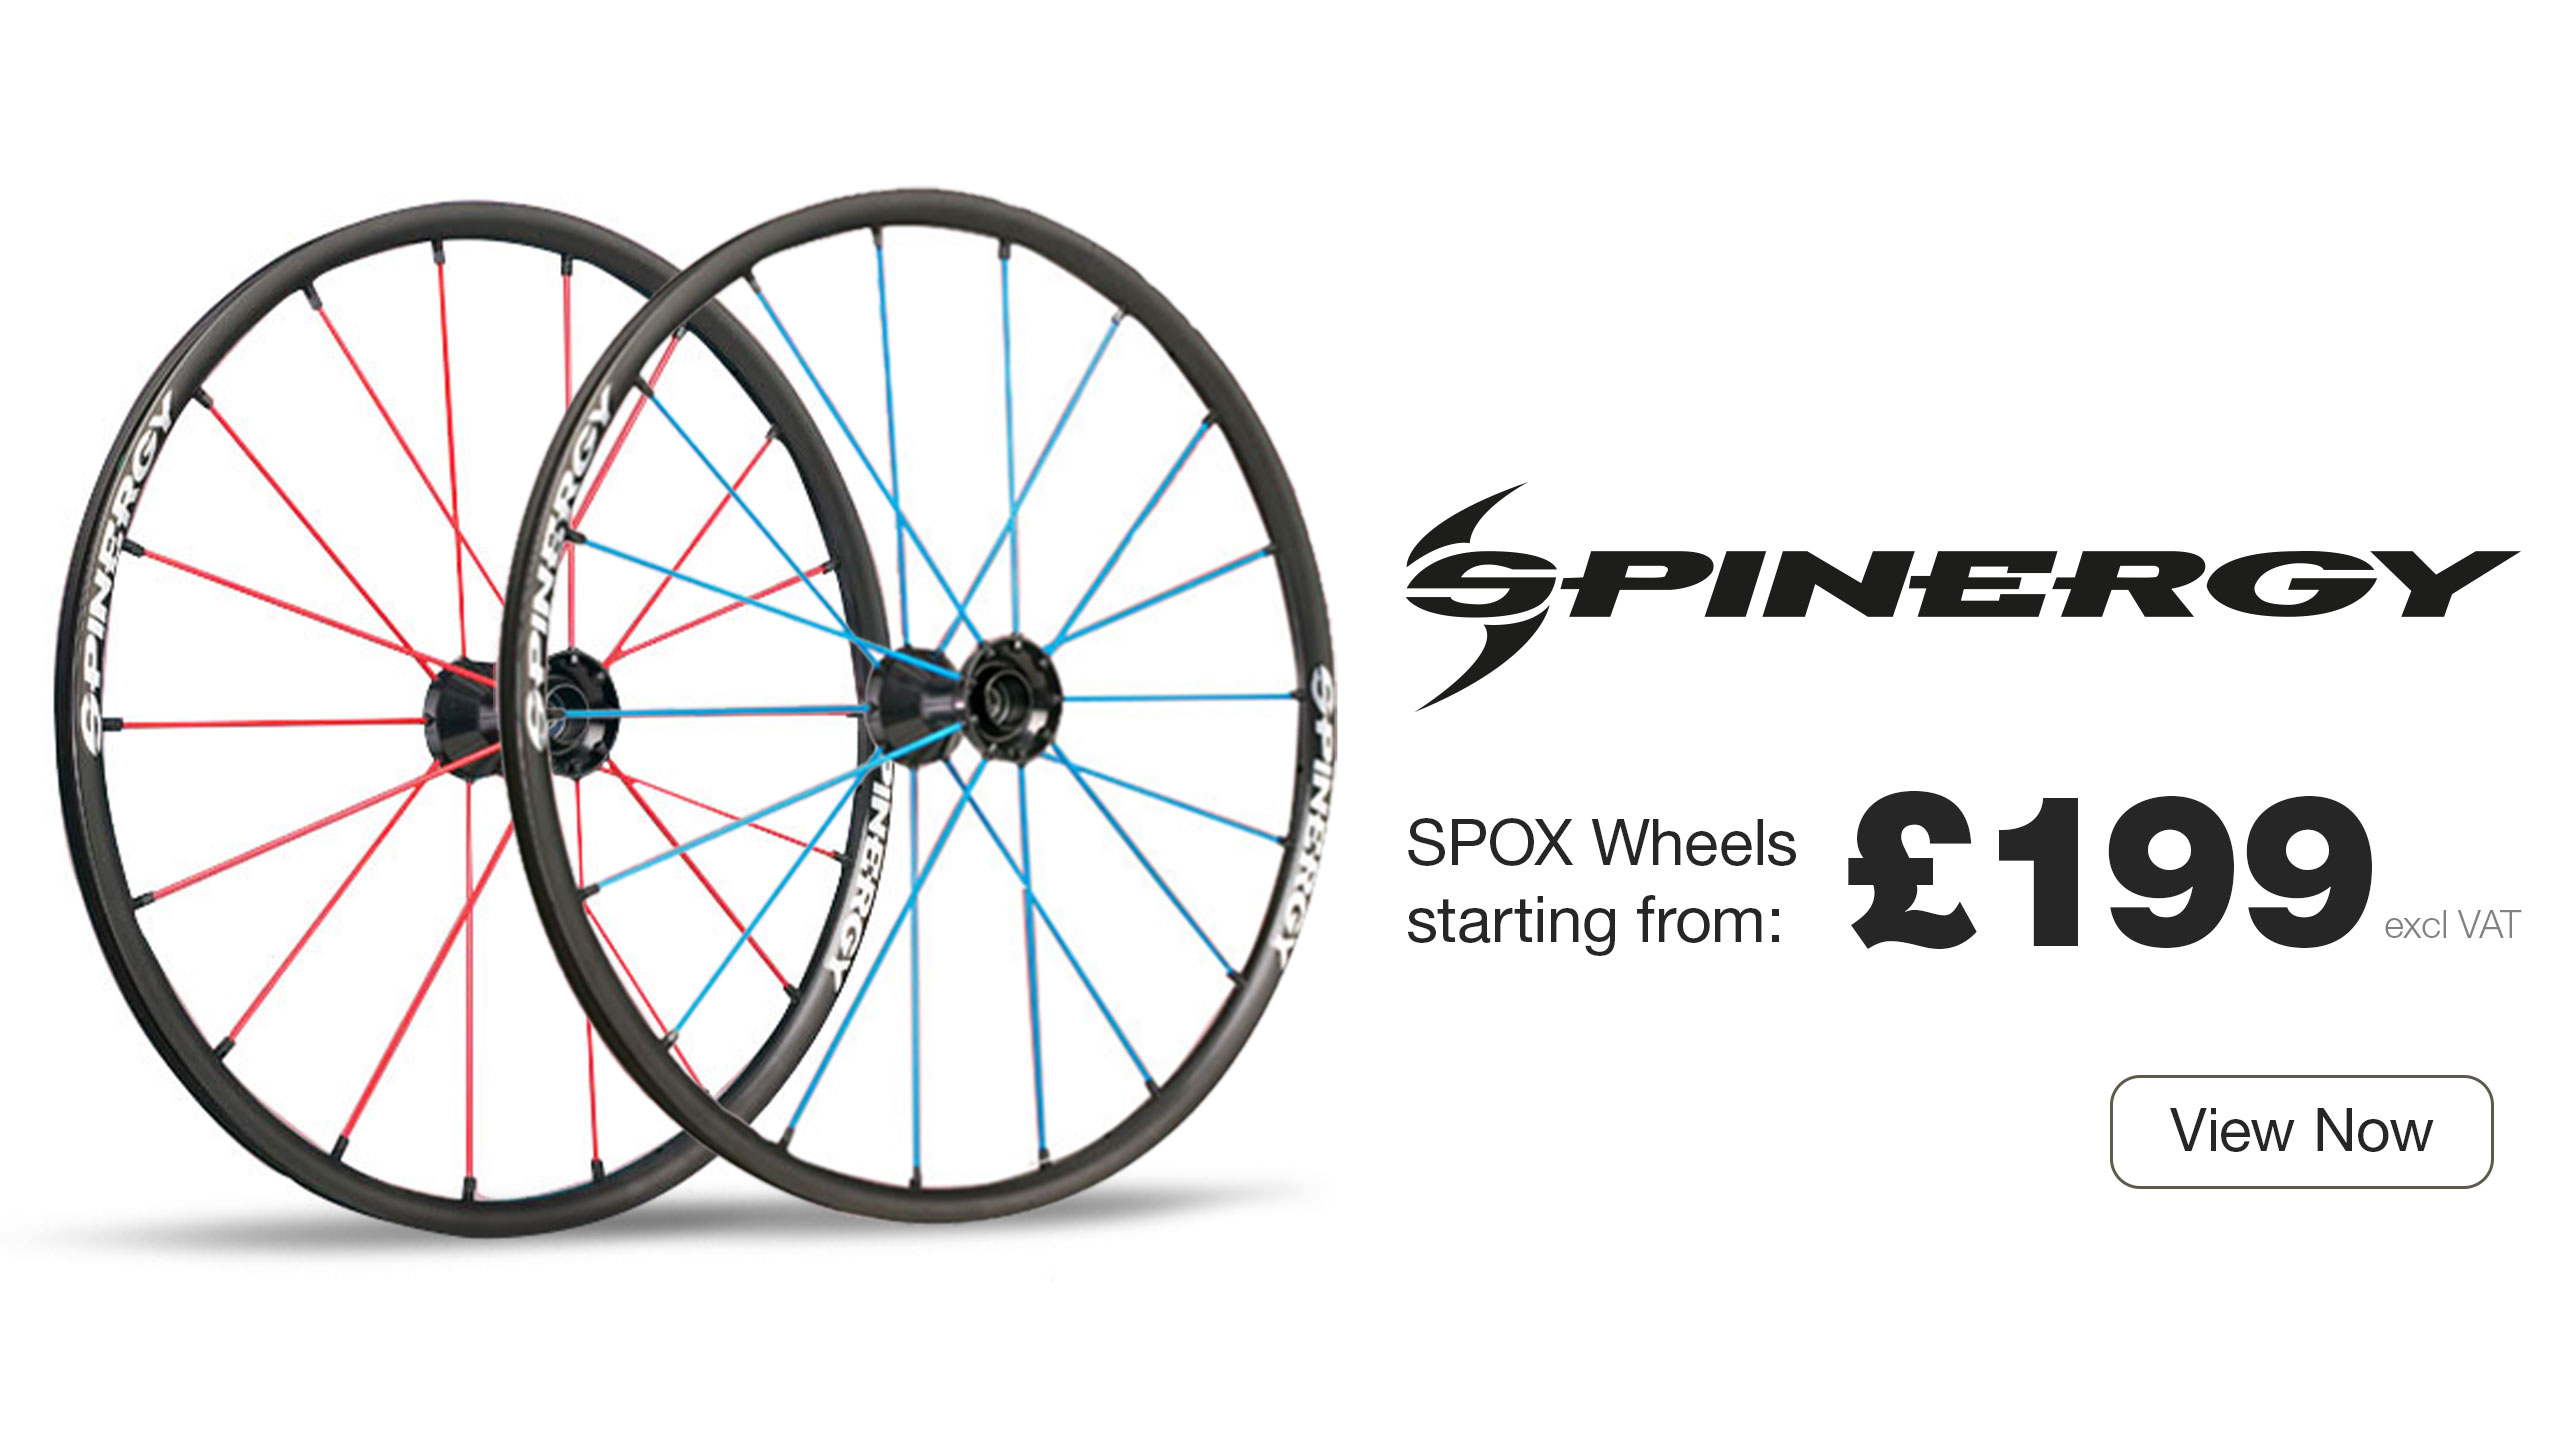 Wheels And More >> Rma Sport Shop Spinergy Wheels Tyres Castors And More